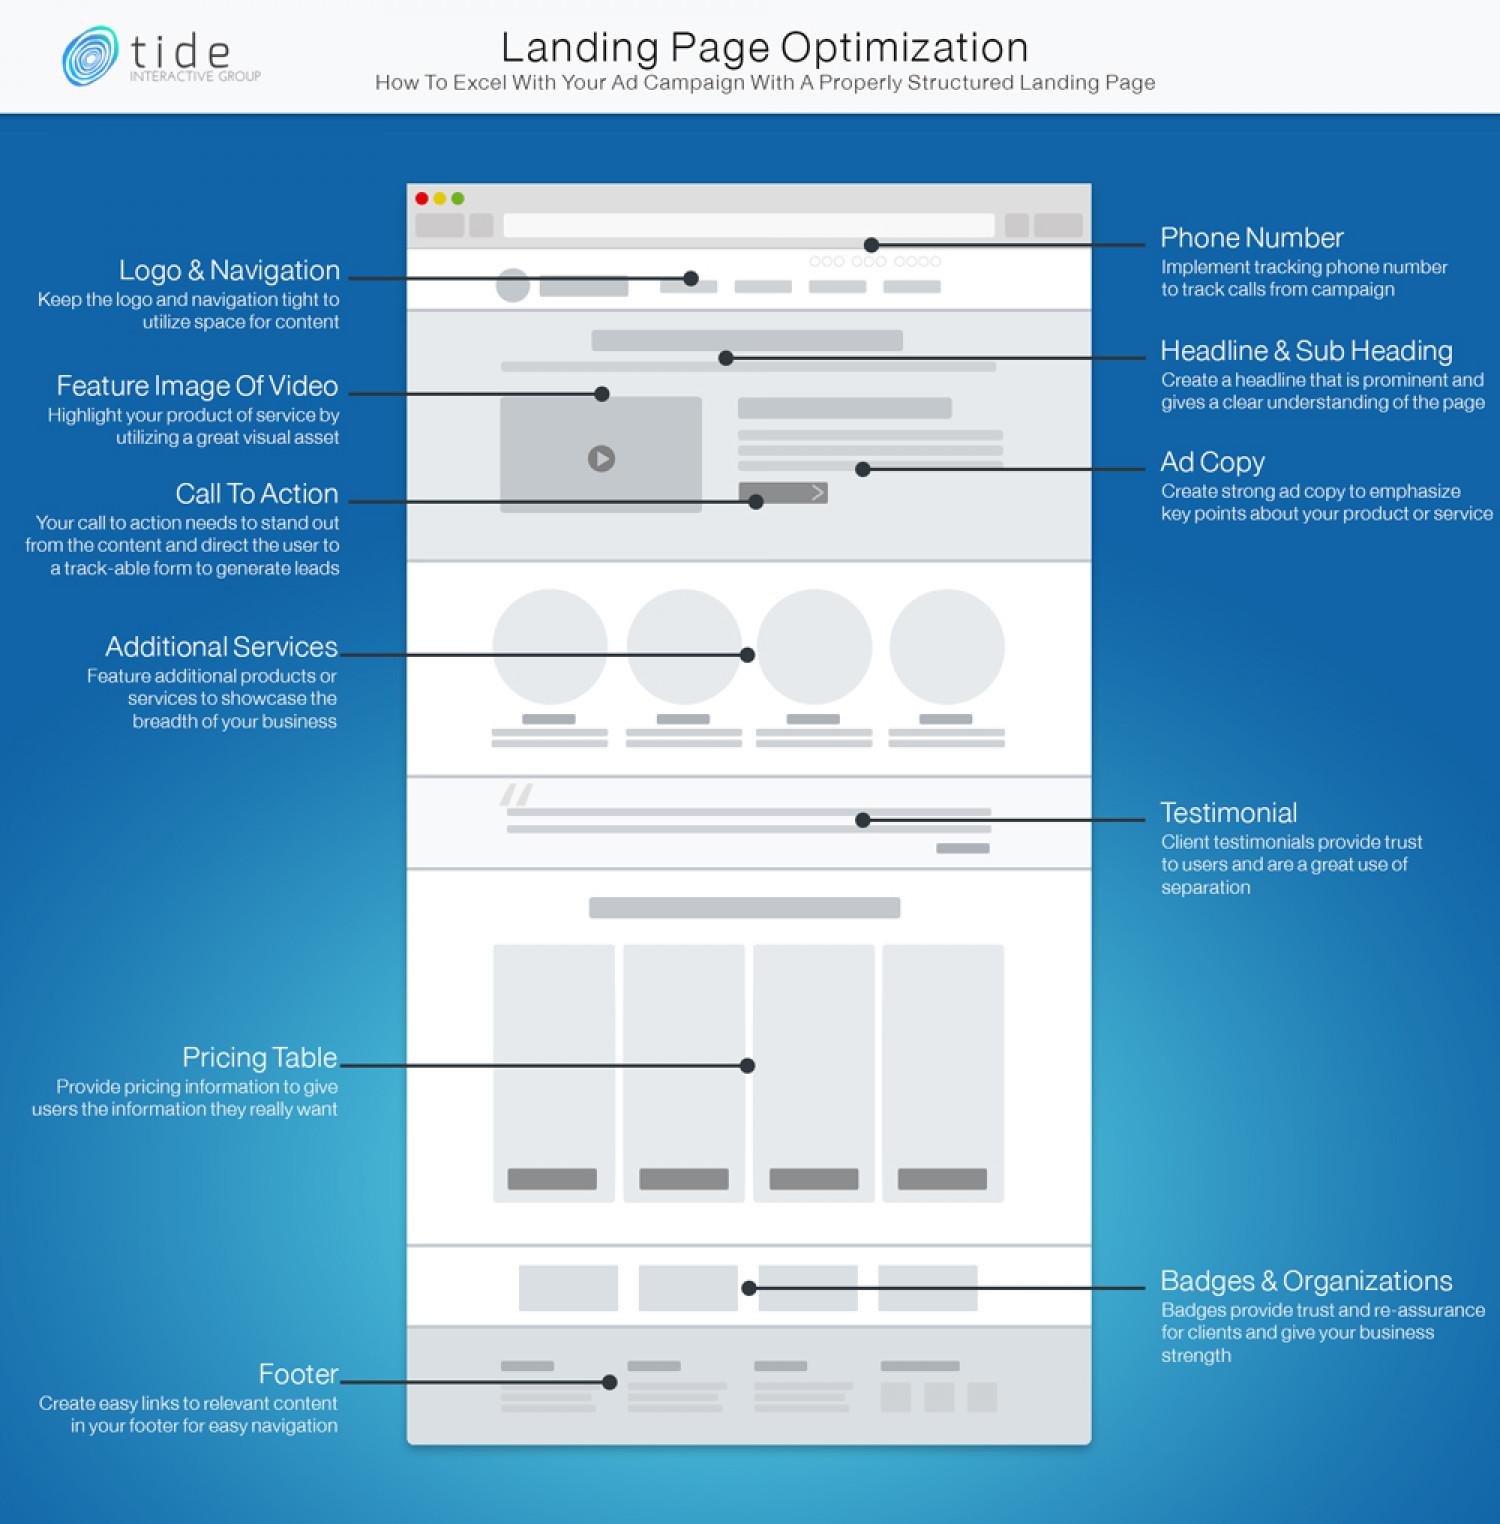 How To Properly Optimize Your Landing Page Infographic